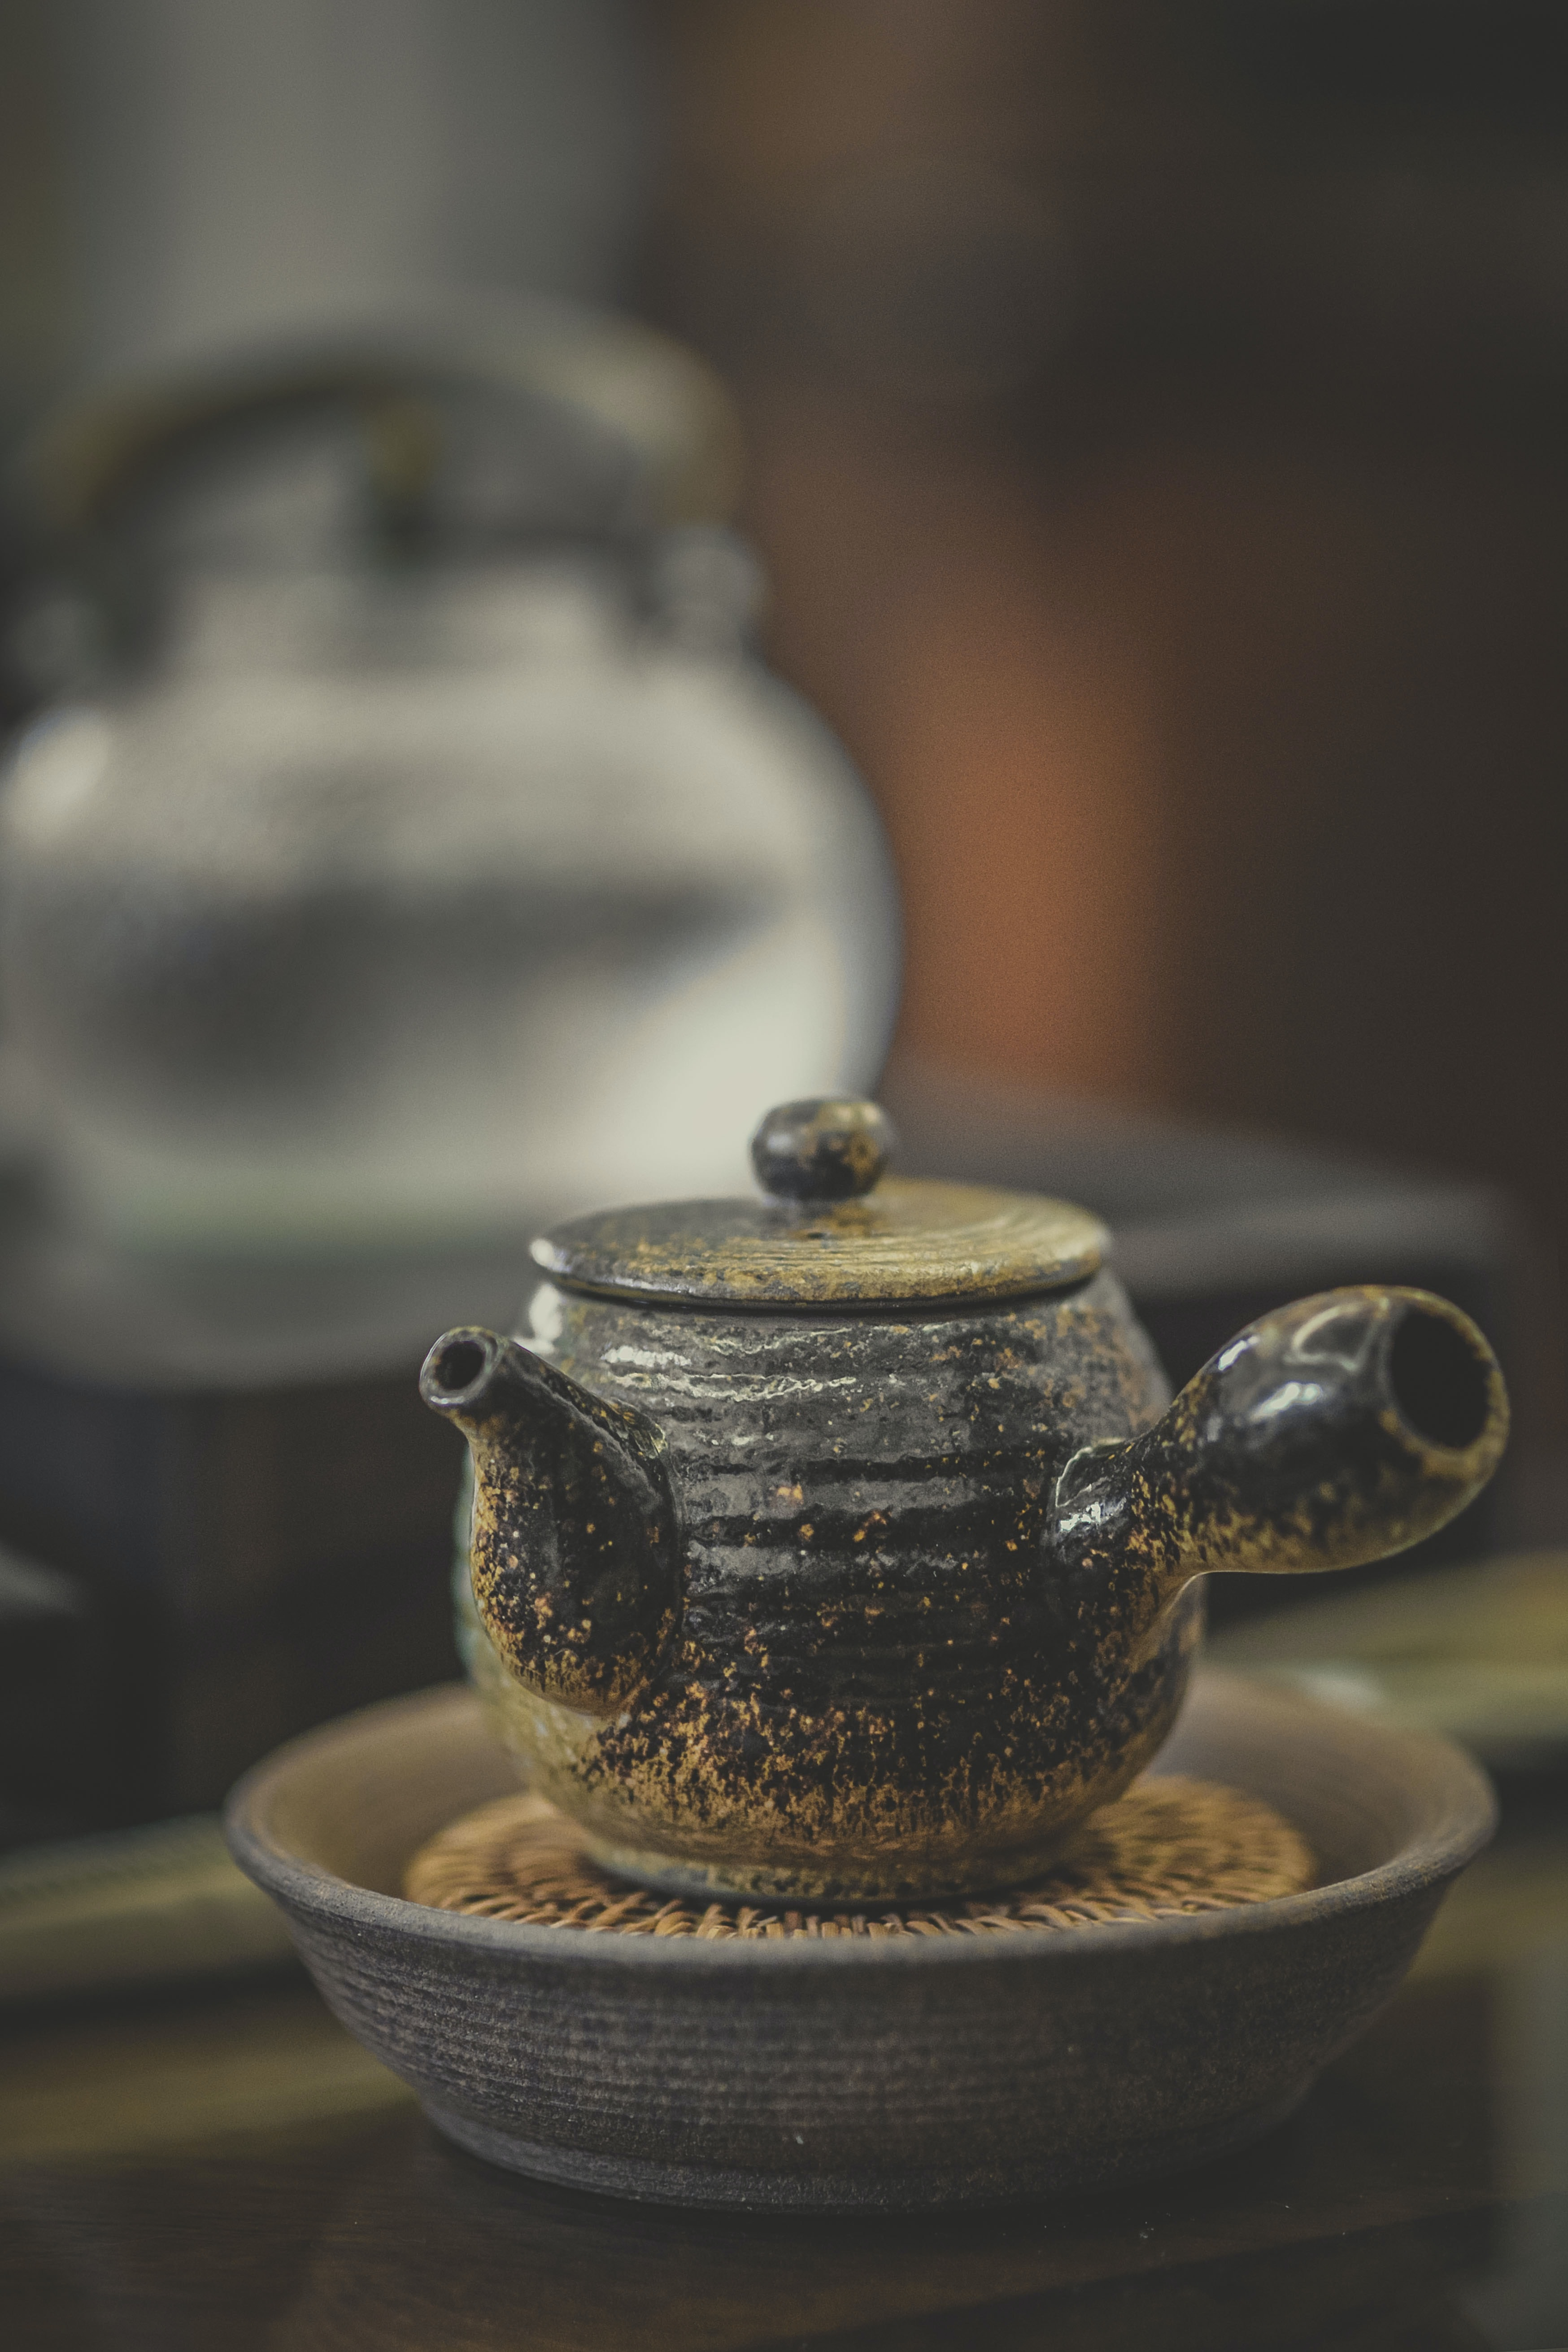 close-up photography of black ceramic pot on brown surface